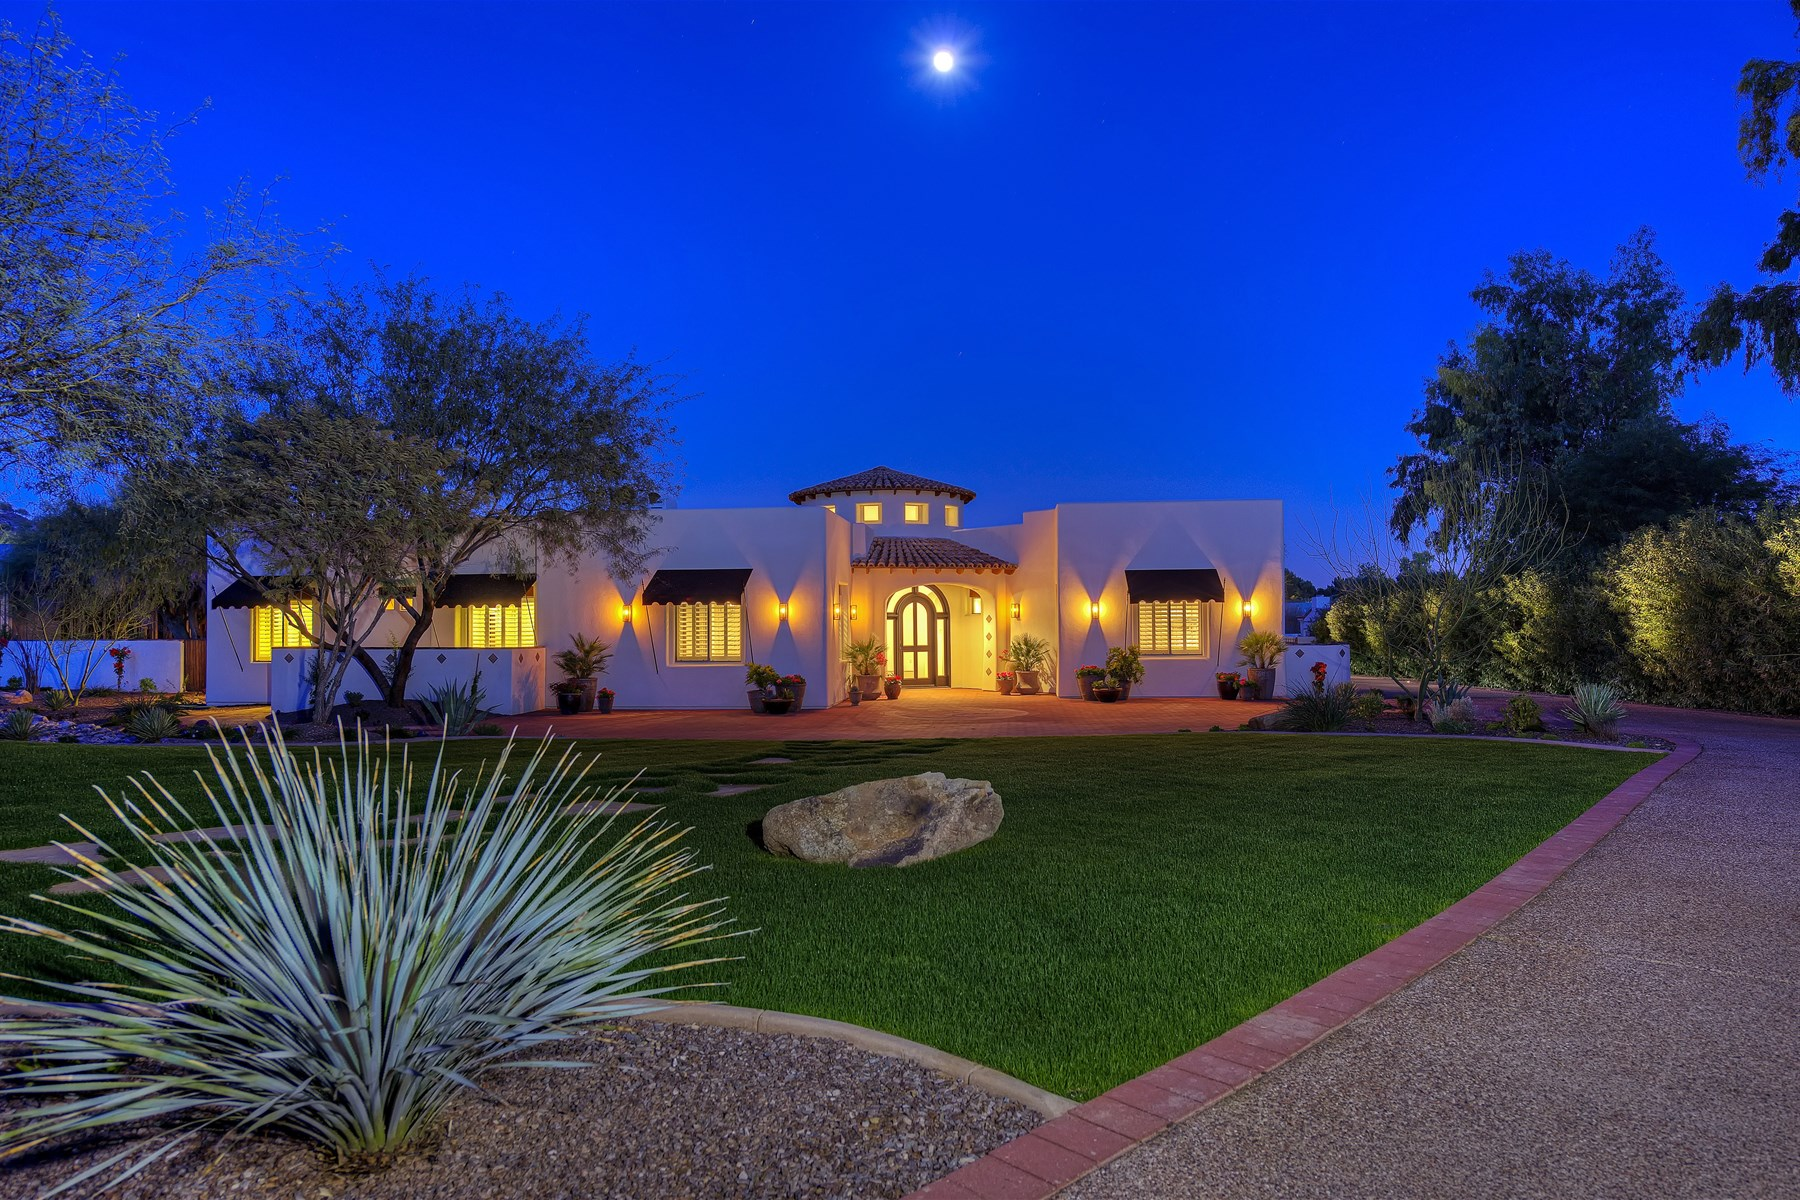 Single Family Home for Sale at Gorgeous Completely Renovated Home in the Heart of Paradise Valley 6651 N Cardinal Drive Paradise Valley, Arizona 85253 United States